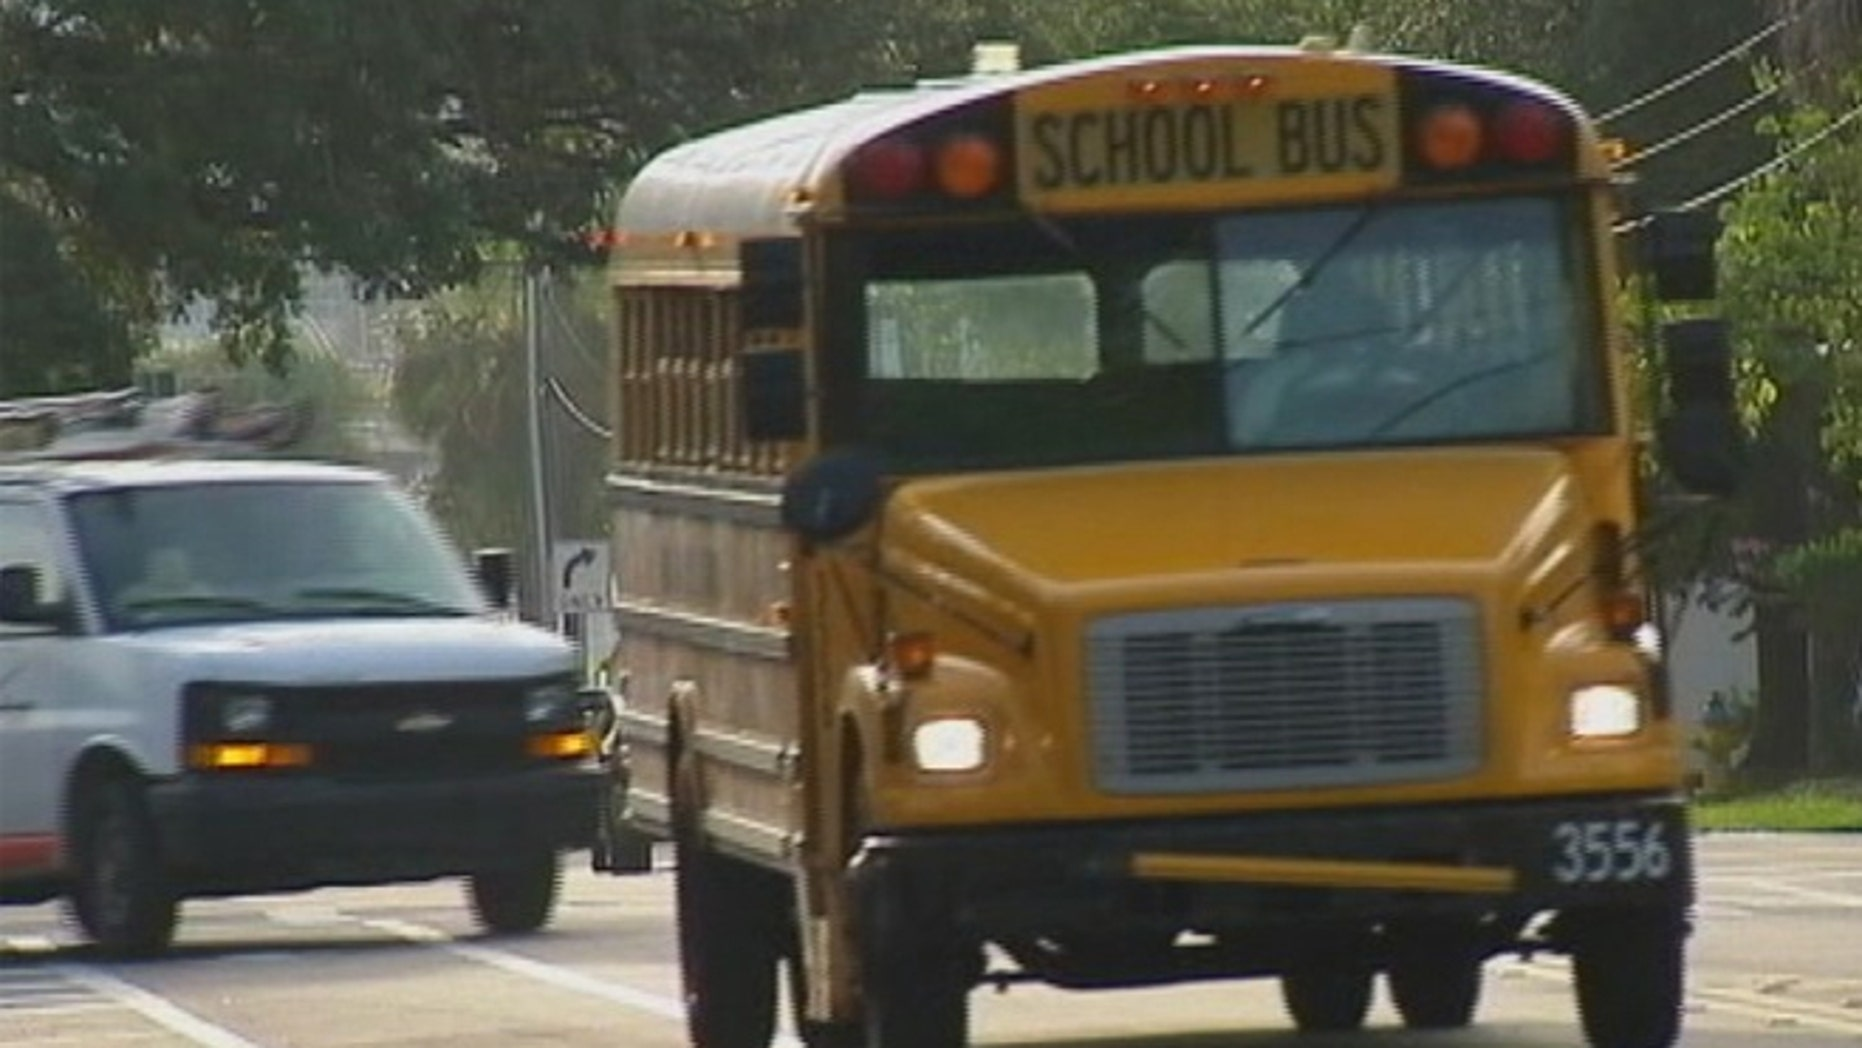 After recent incidents on school buses, a Florida school board opted to temporarily put armed deputies on buses.